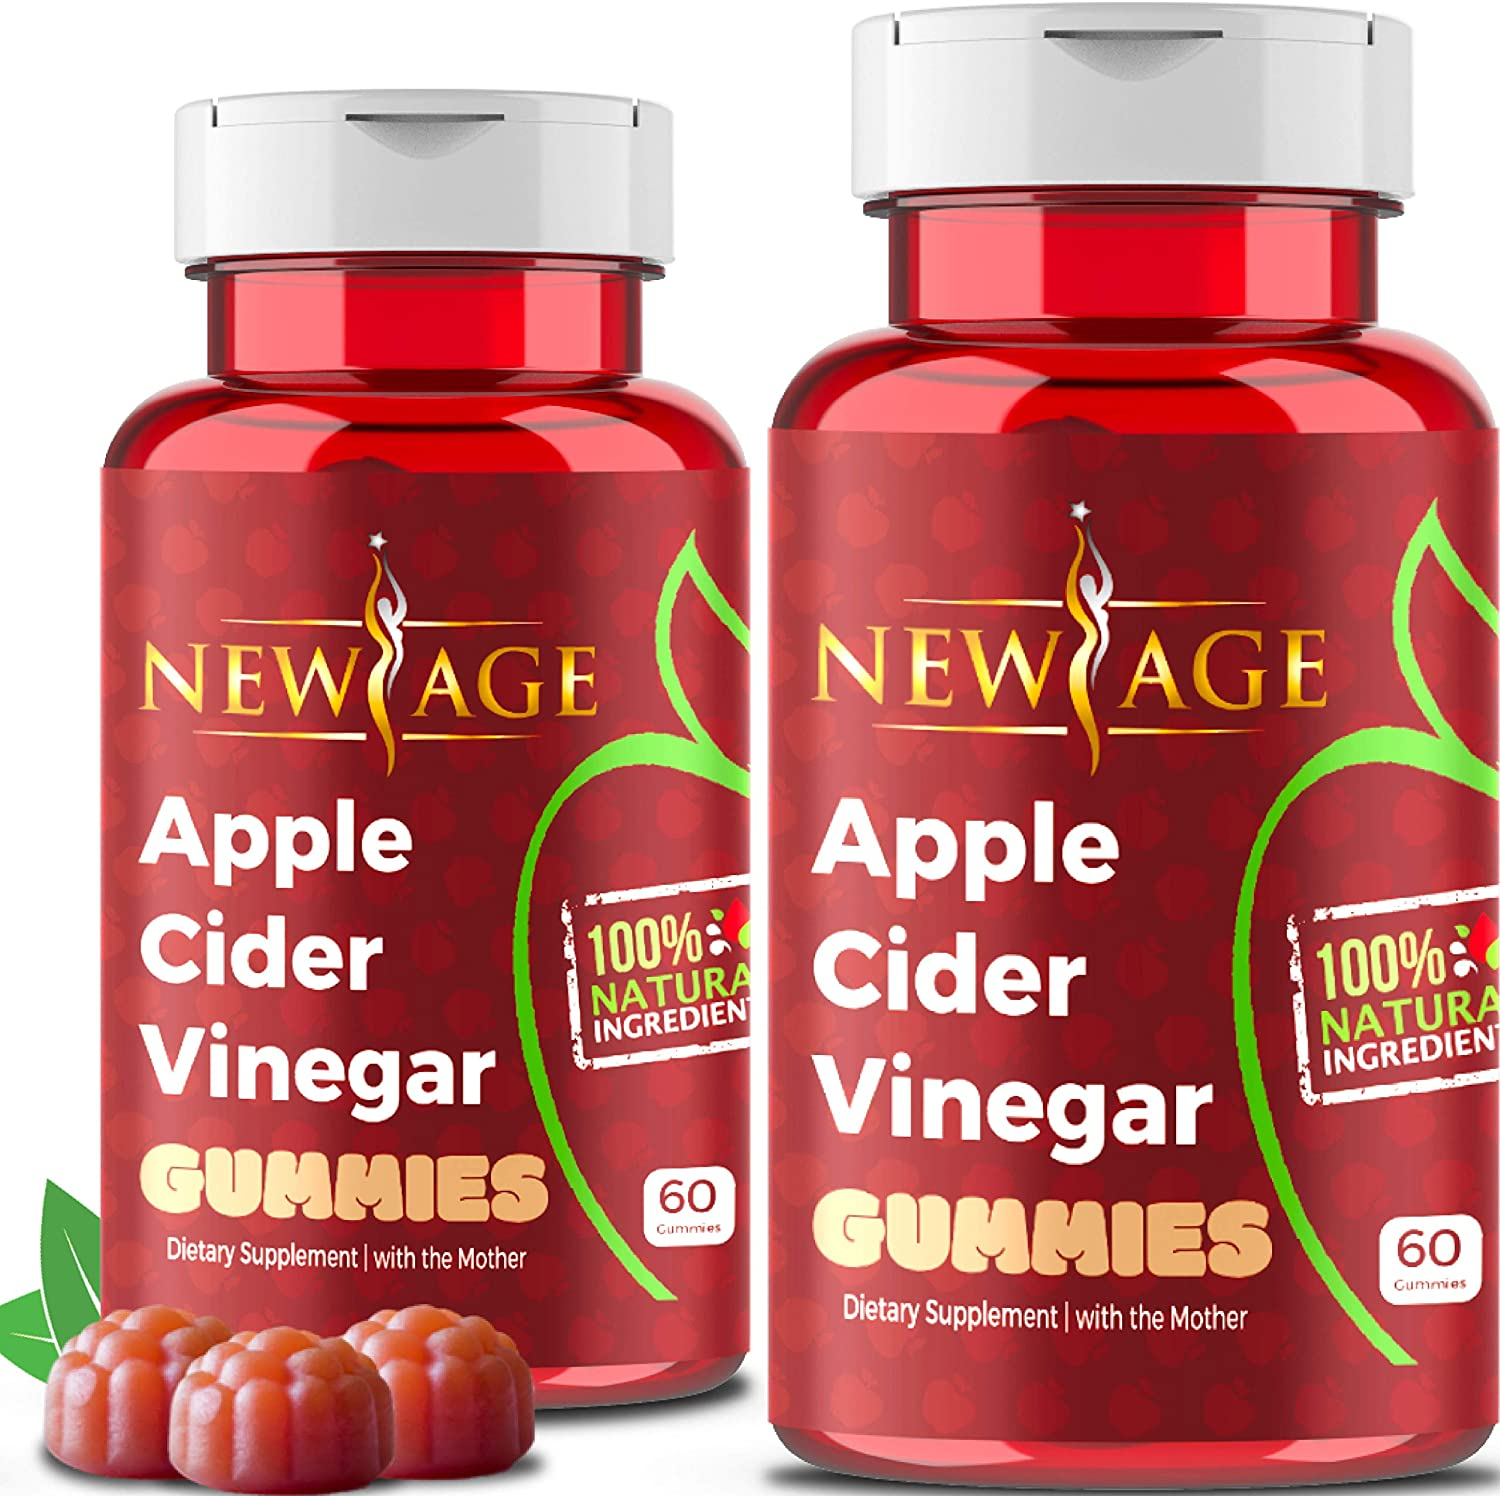 (2-Pack) Apple Cider Vinegar Gummies by New Age - Amazing Taste with Raw, Organic, Unfiltered Mother ACV, B9, B12, Beetroot, Pomegranate. Vegan & Non-GMO Gummy. Made in USA.